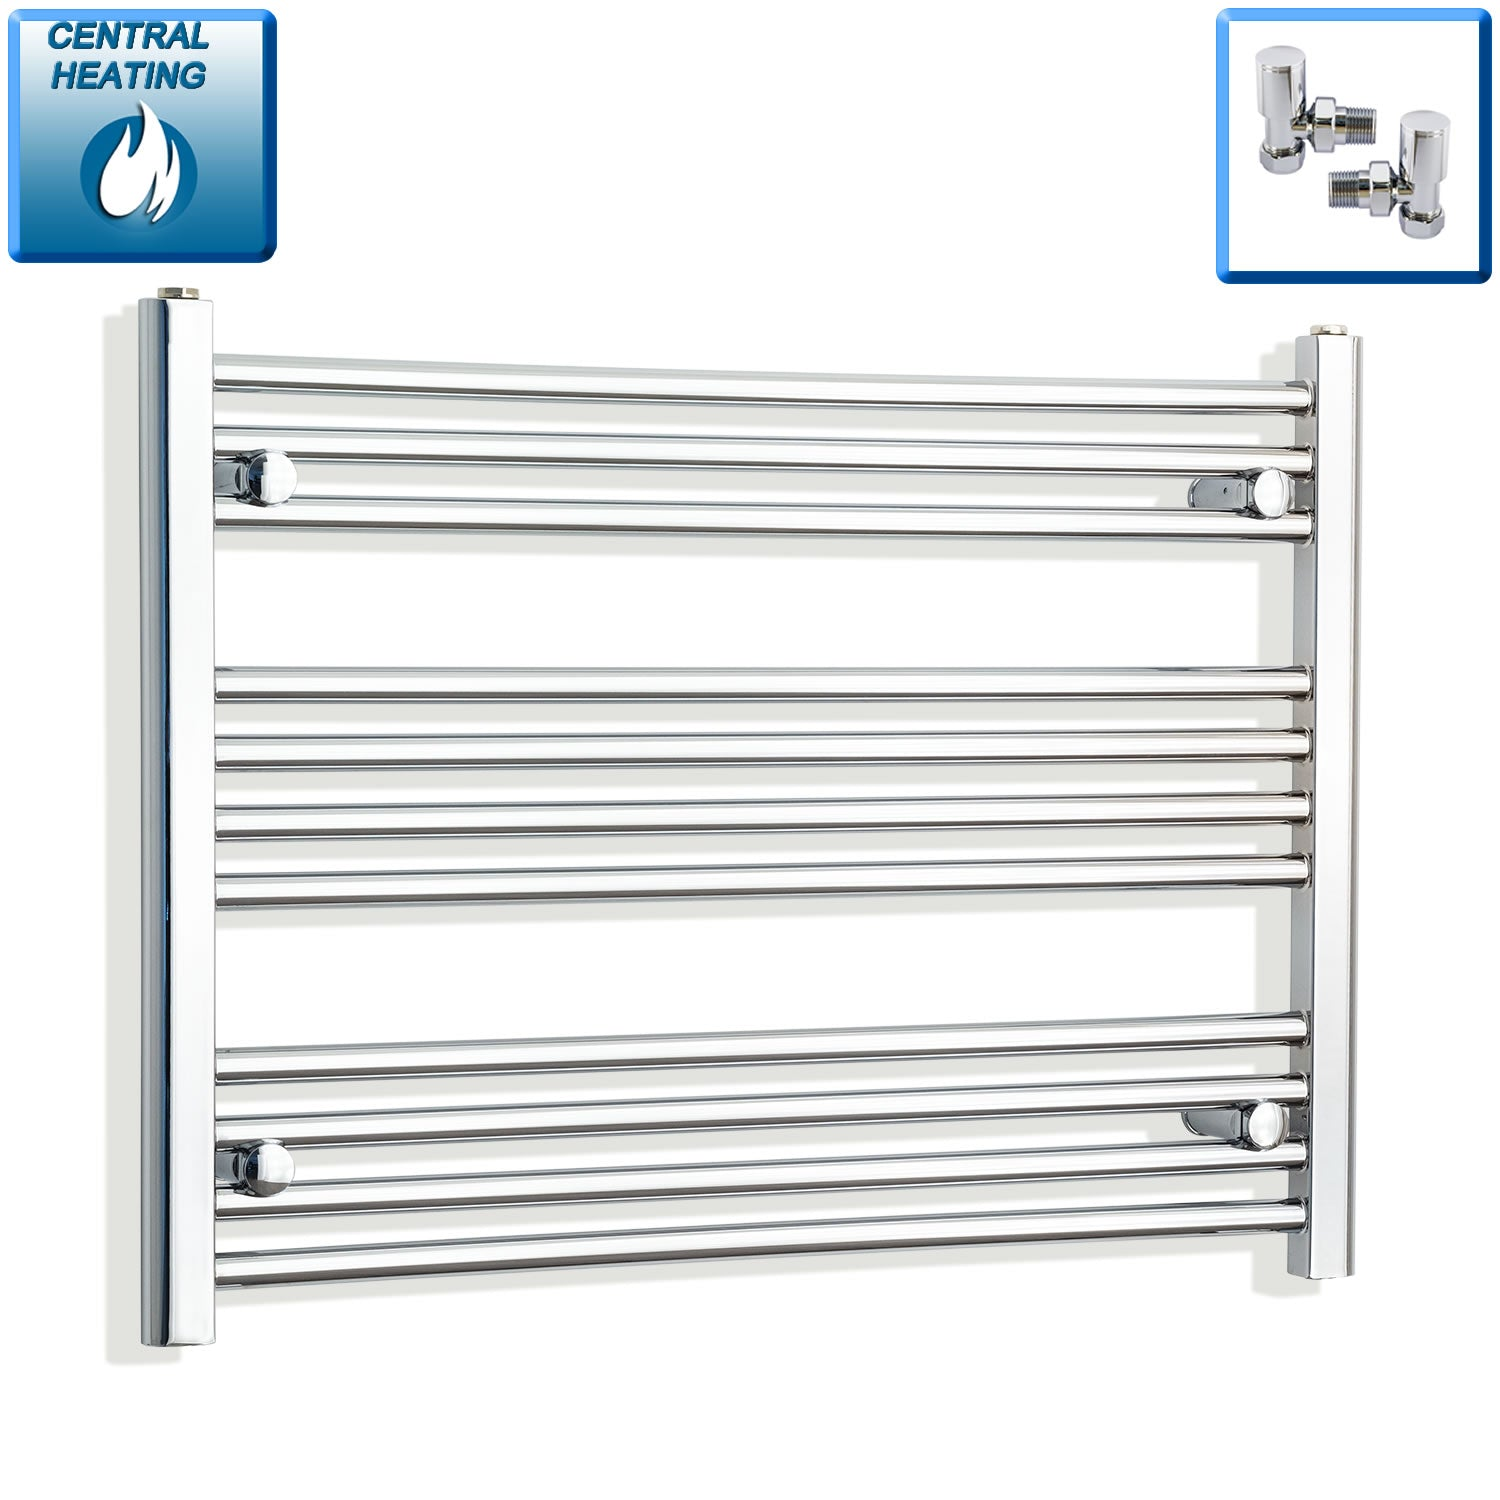 900mm Wide 600mm High Chrome Towel Rail Radiator With Angled Valve